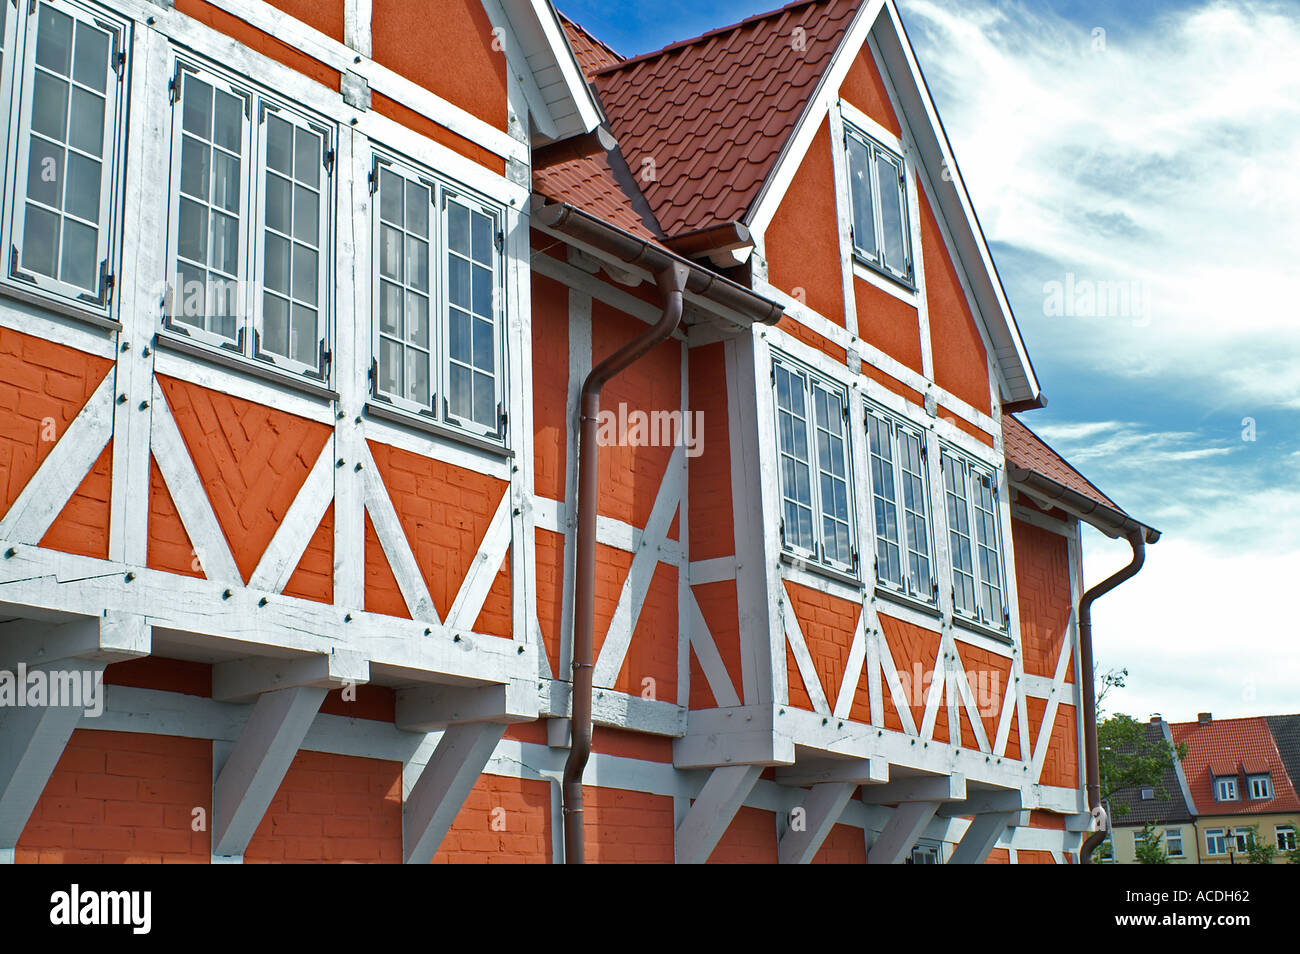 half timbered house in Wismar Hanse town city Germany Mecklenburg Pomerania - Stock Image